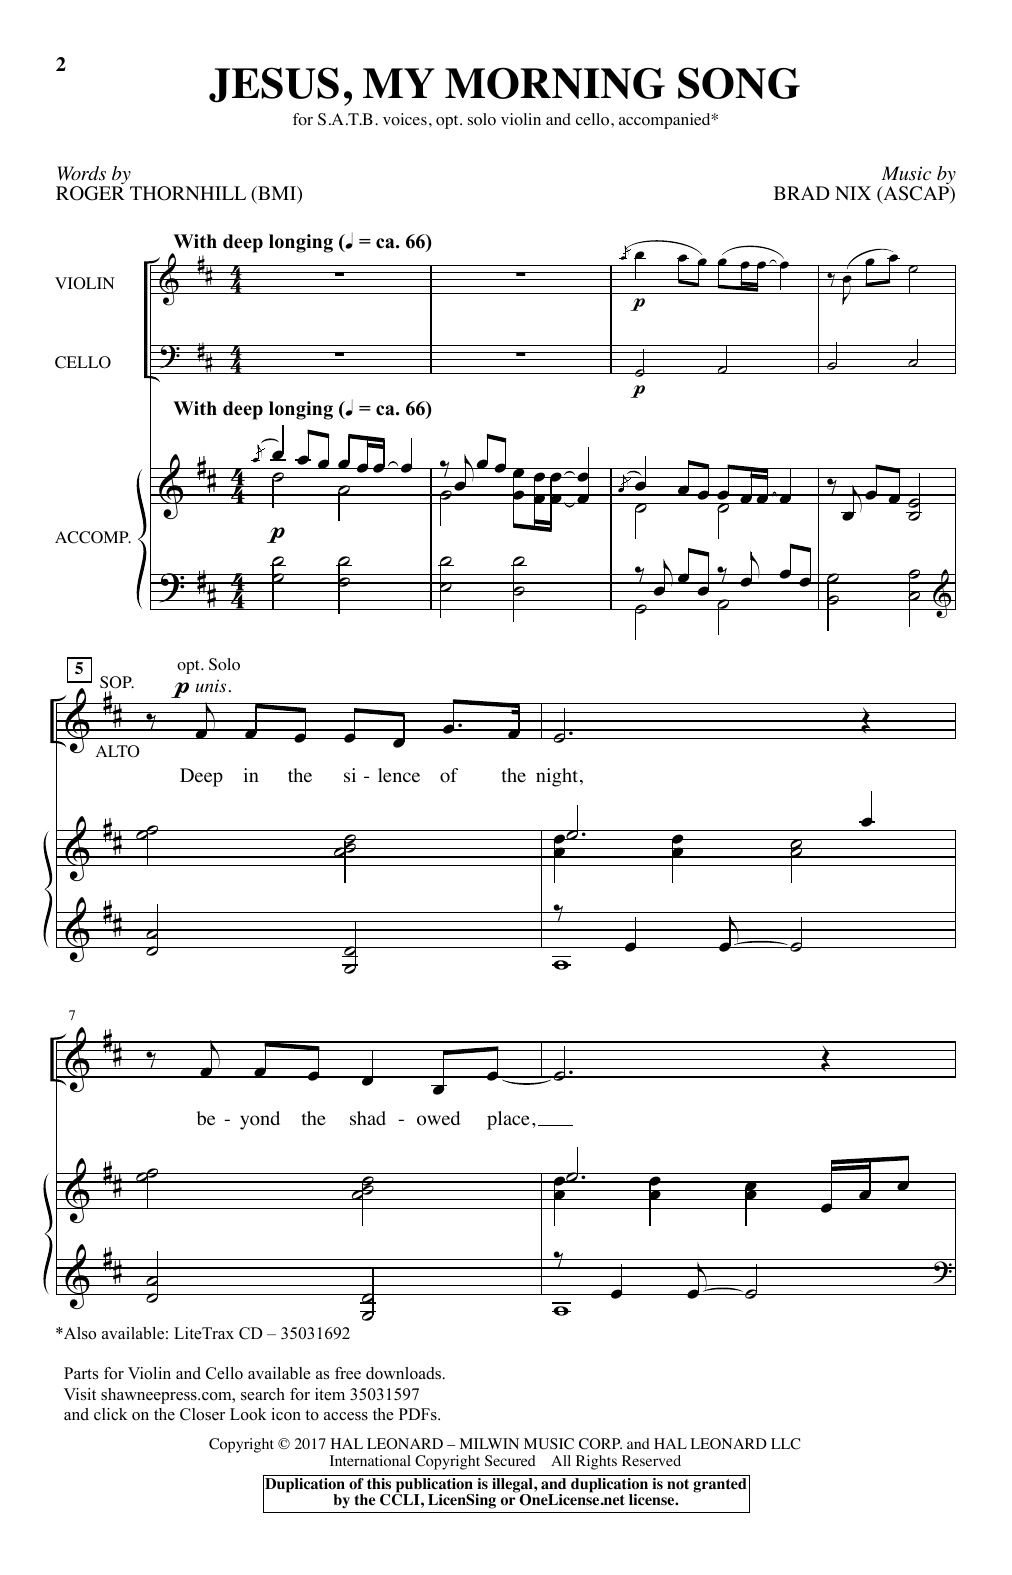 Brad Nix Jesus, My Morning Song sheet music notes and chords. Download Printable PDF.